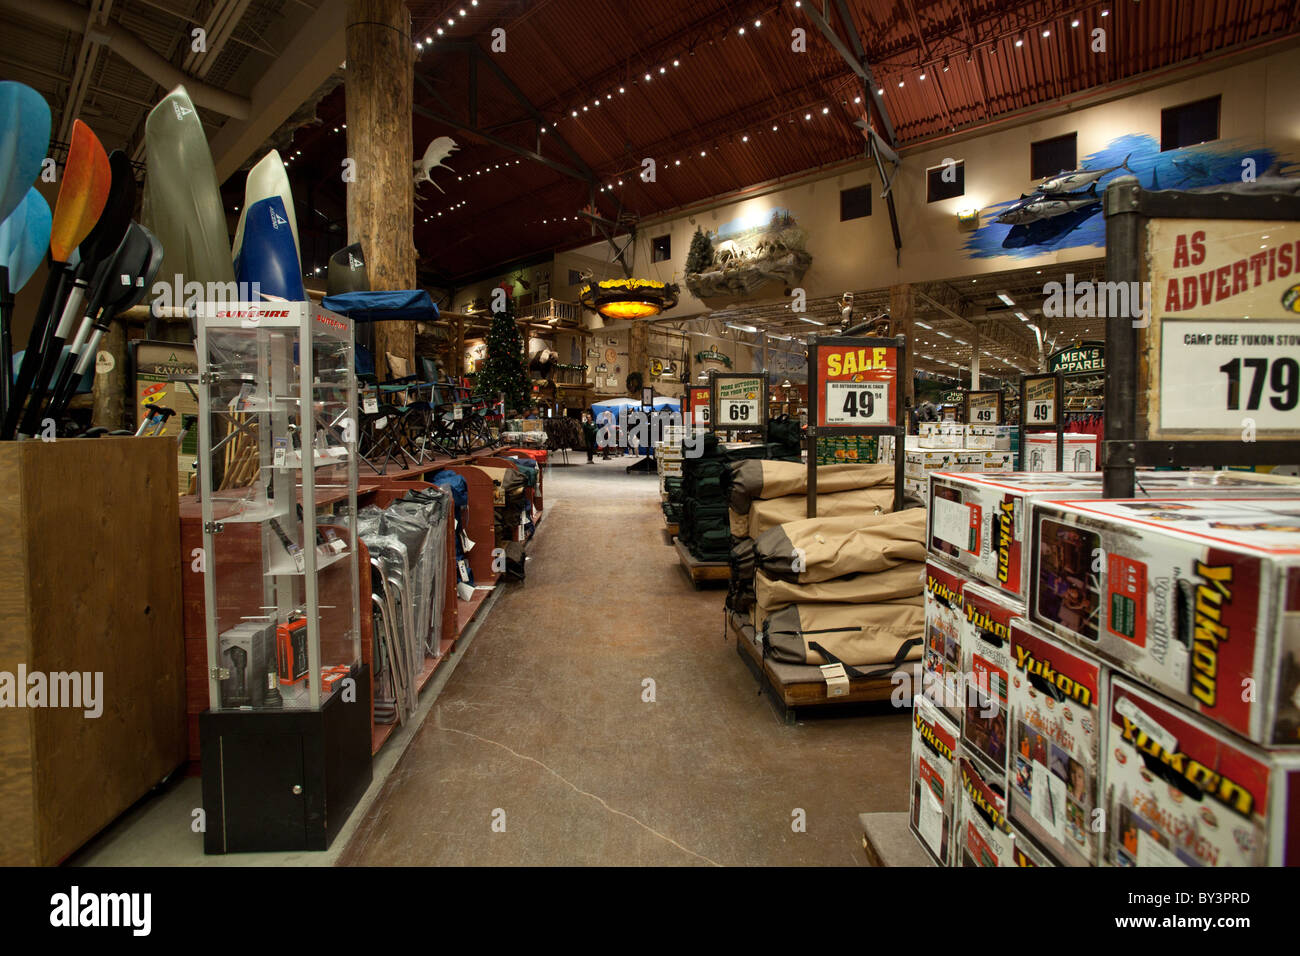 Boat and camping equipment for sale in Outdoor World retail store in Stock Photo: 33889841 - Alamy